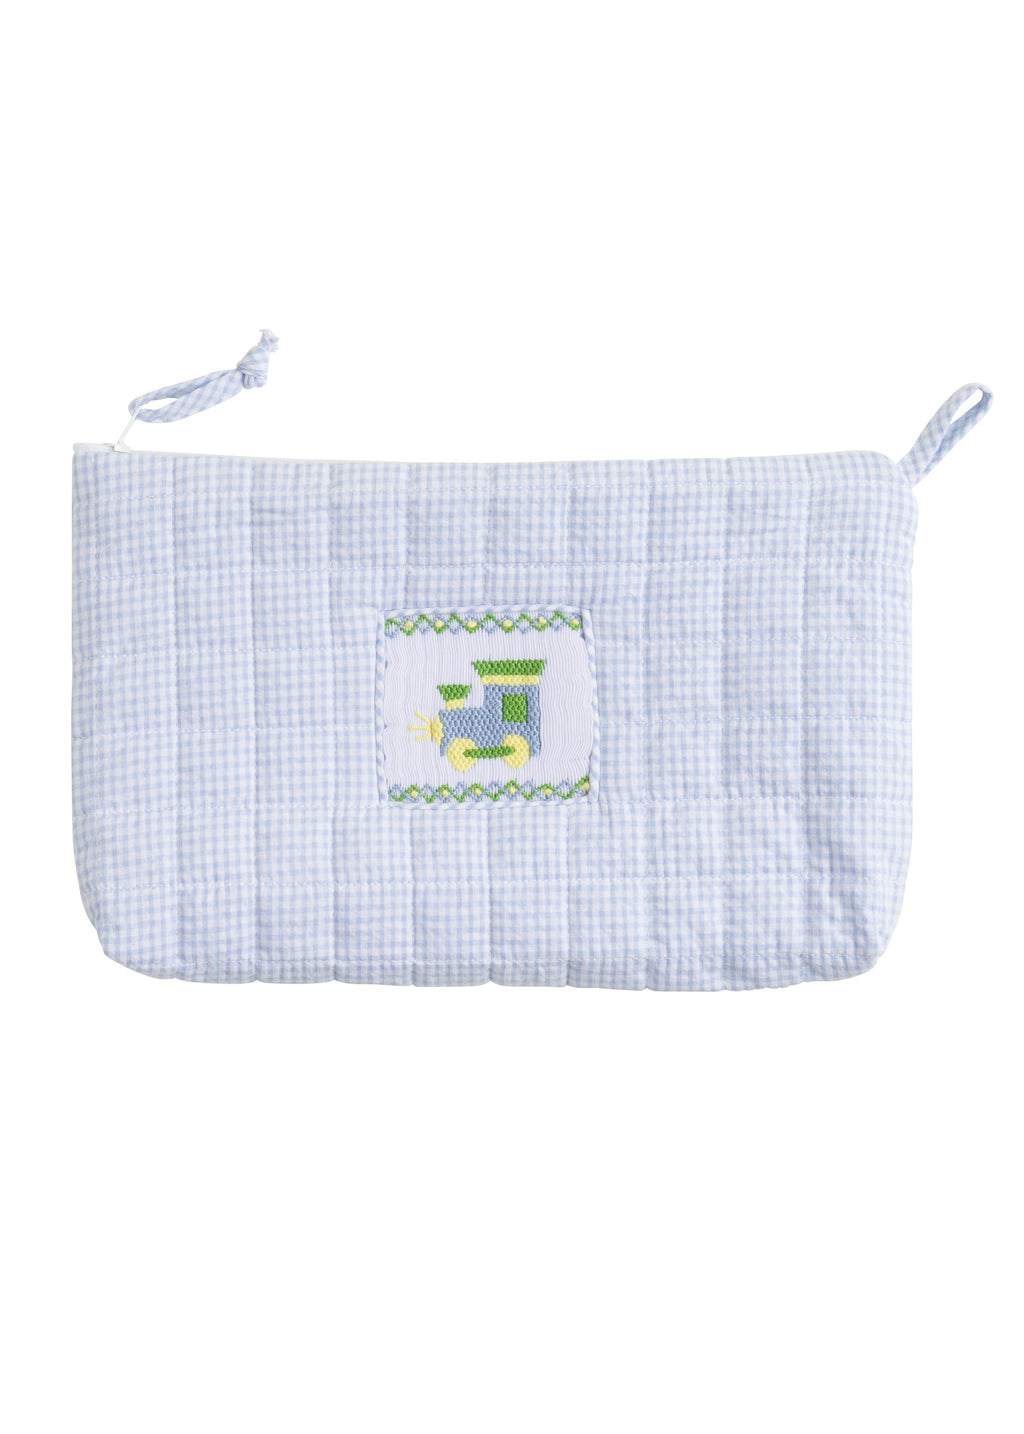 Quilted Train Cosmetic Bag - Born Childrens Boutique